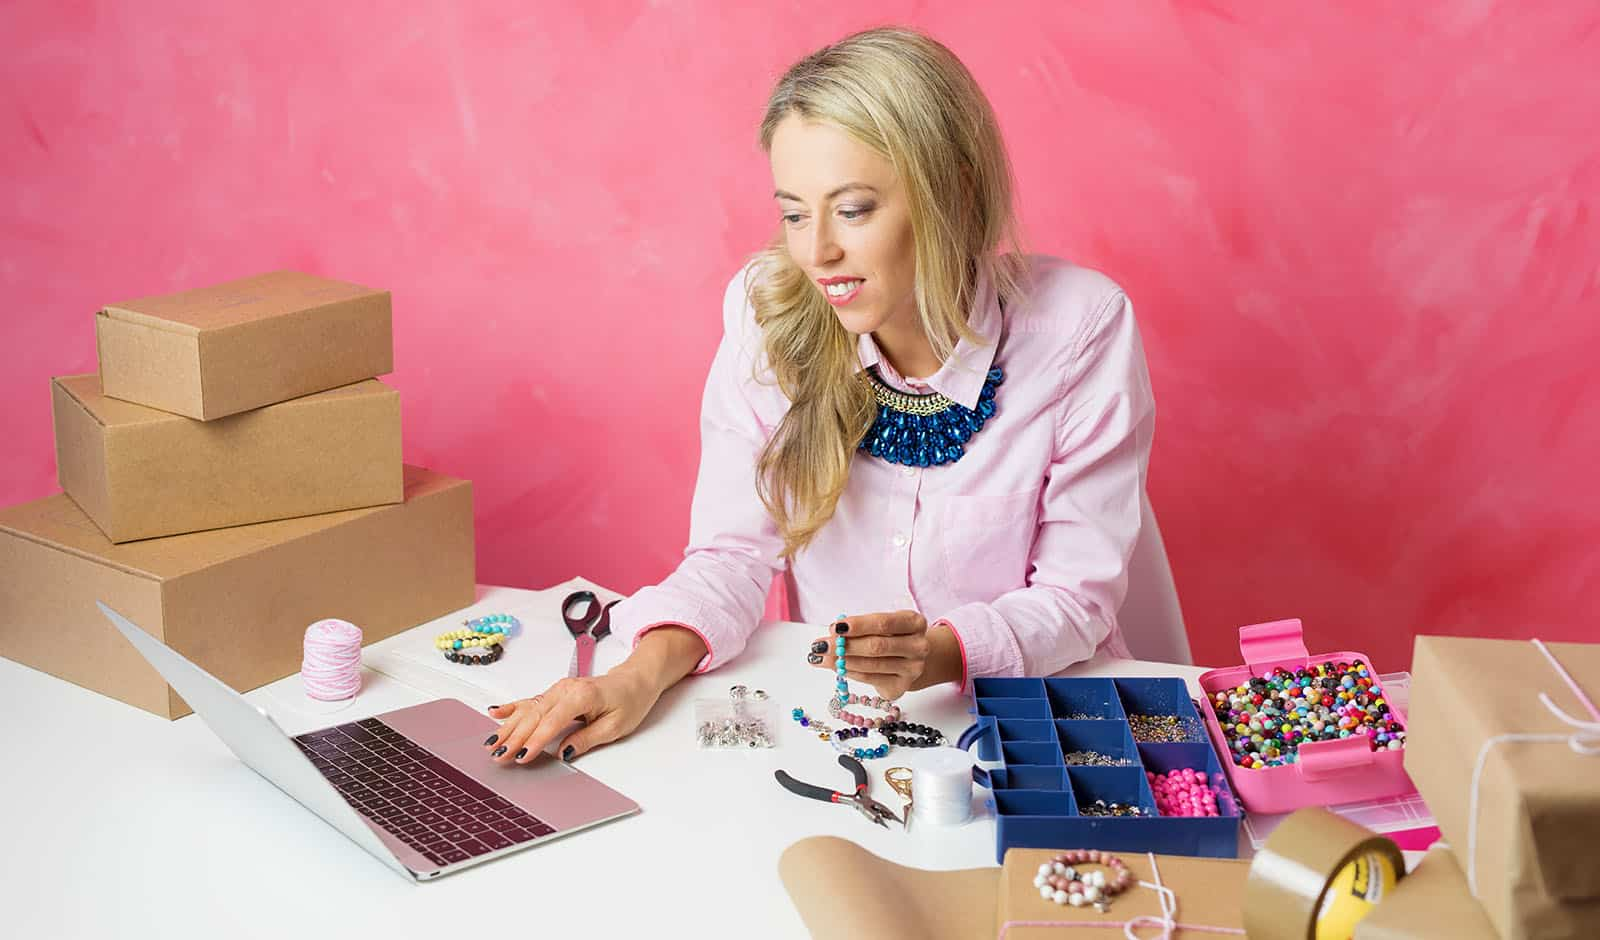 Woman working from home. Making pieces of jewellery and sells th